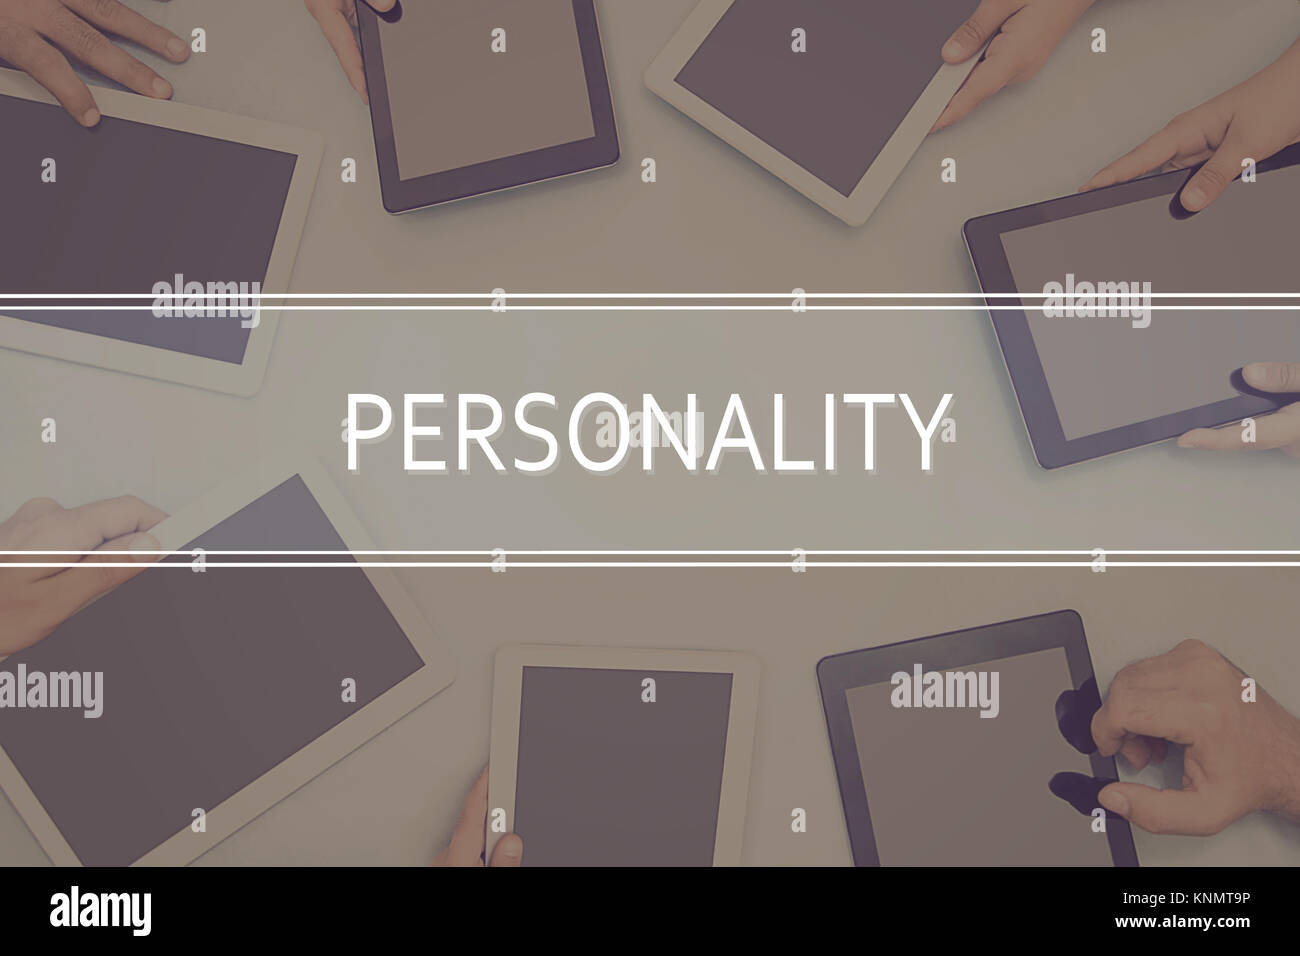 PERSONALITY CONCEPT Business Concept. - Stock Image